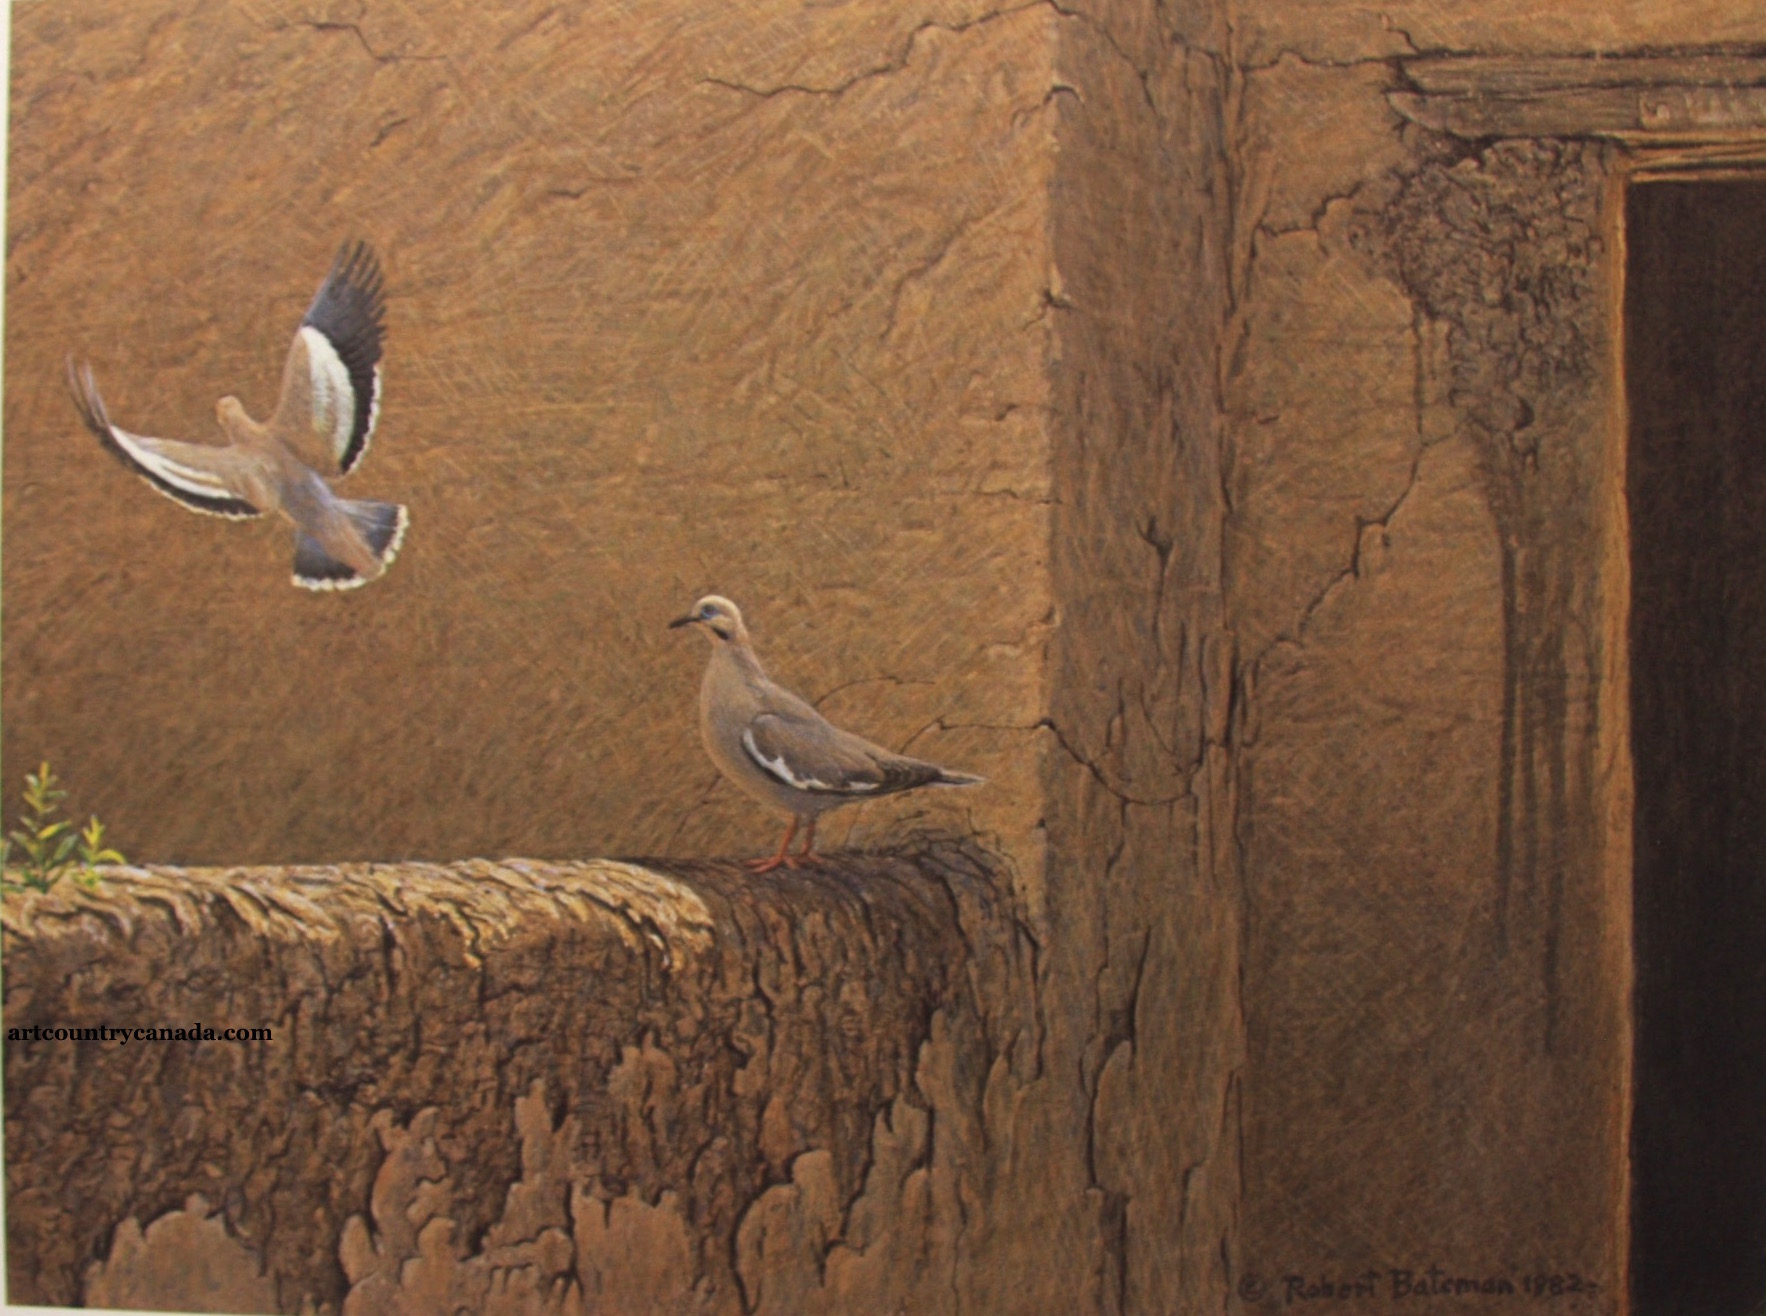 Robert Bateman Old Adobe White winged Doves